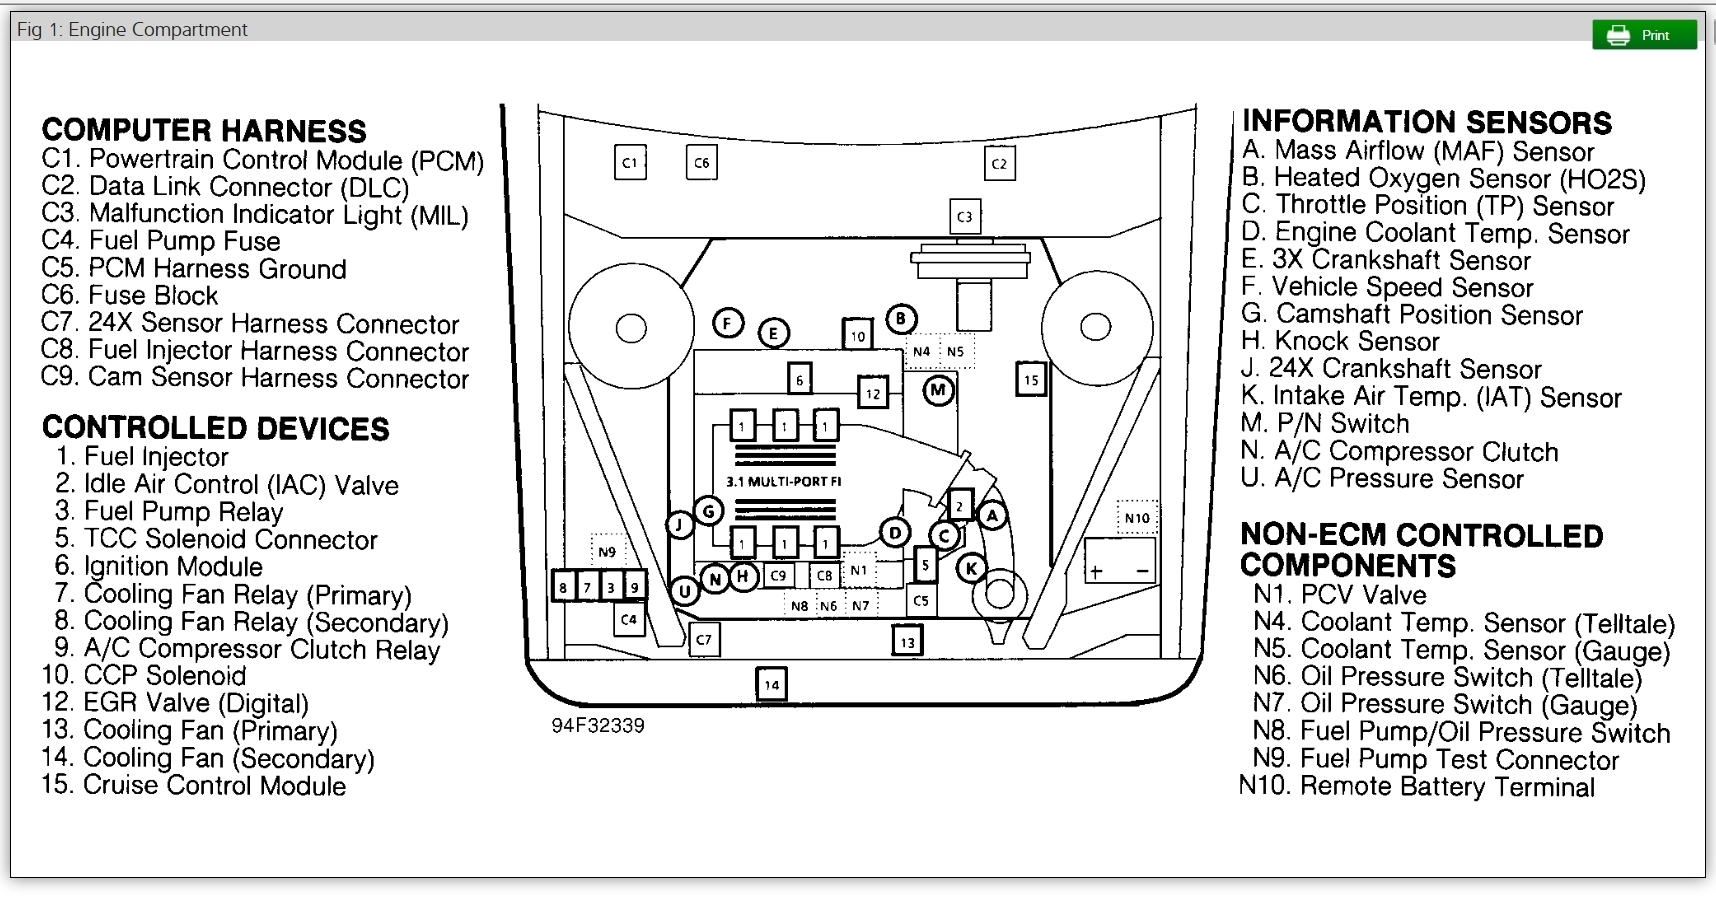 original  Buick Century Wiring Diagram on 95 buick century keyless entry, 1998 buick century engine diagram, 1995 buick lesabre parts diagram, 95 buick century manual, buick century pcm diagram, 1993 buick century radiator diagram, 1997 buick lesabre parts diagram, 1988 firebird wiring diagram, buick transmission solenoid diagram, 95 buick lesabre fuse diagram, 2003 buick century engine diagram, 95 buick century transmission, 99 buick century engine diagram,